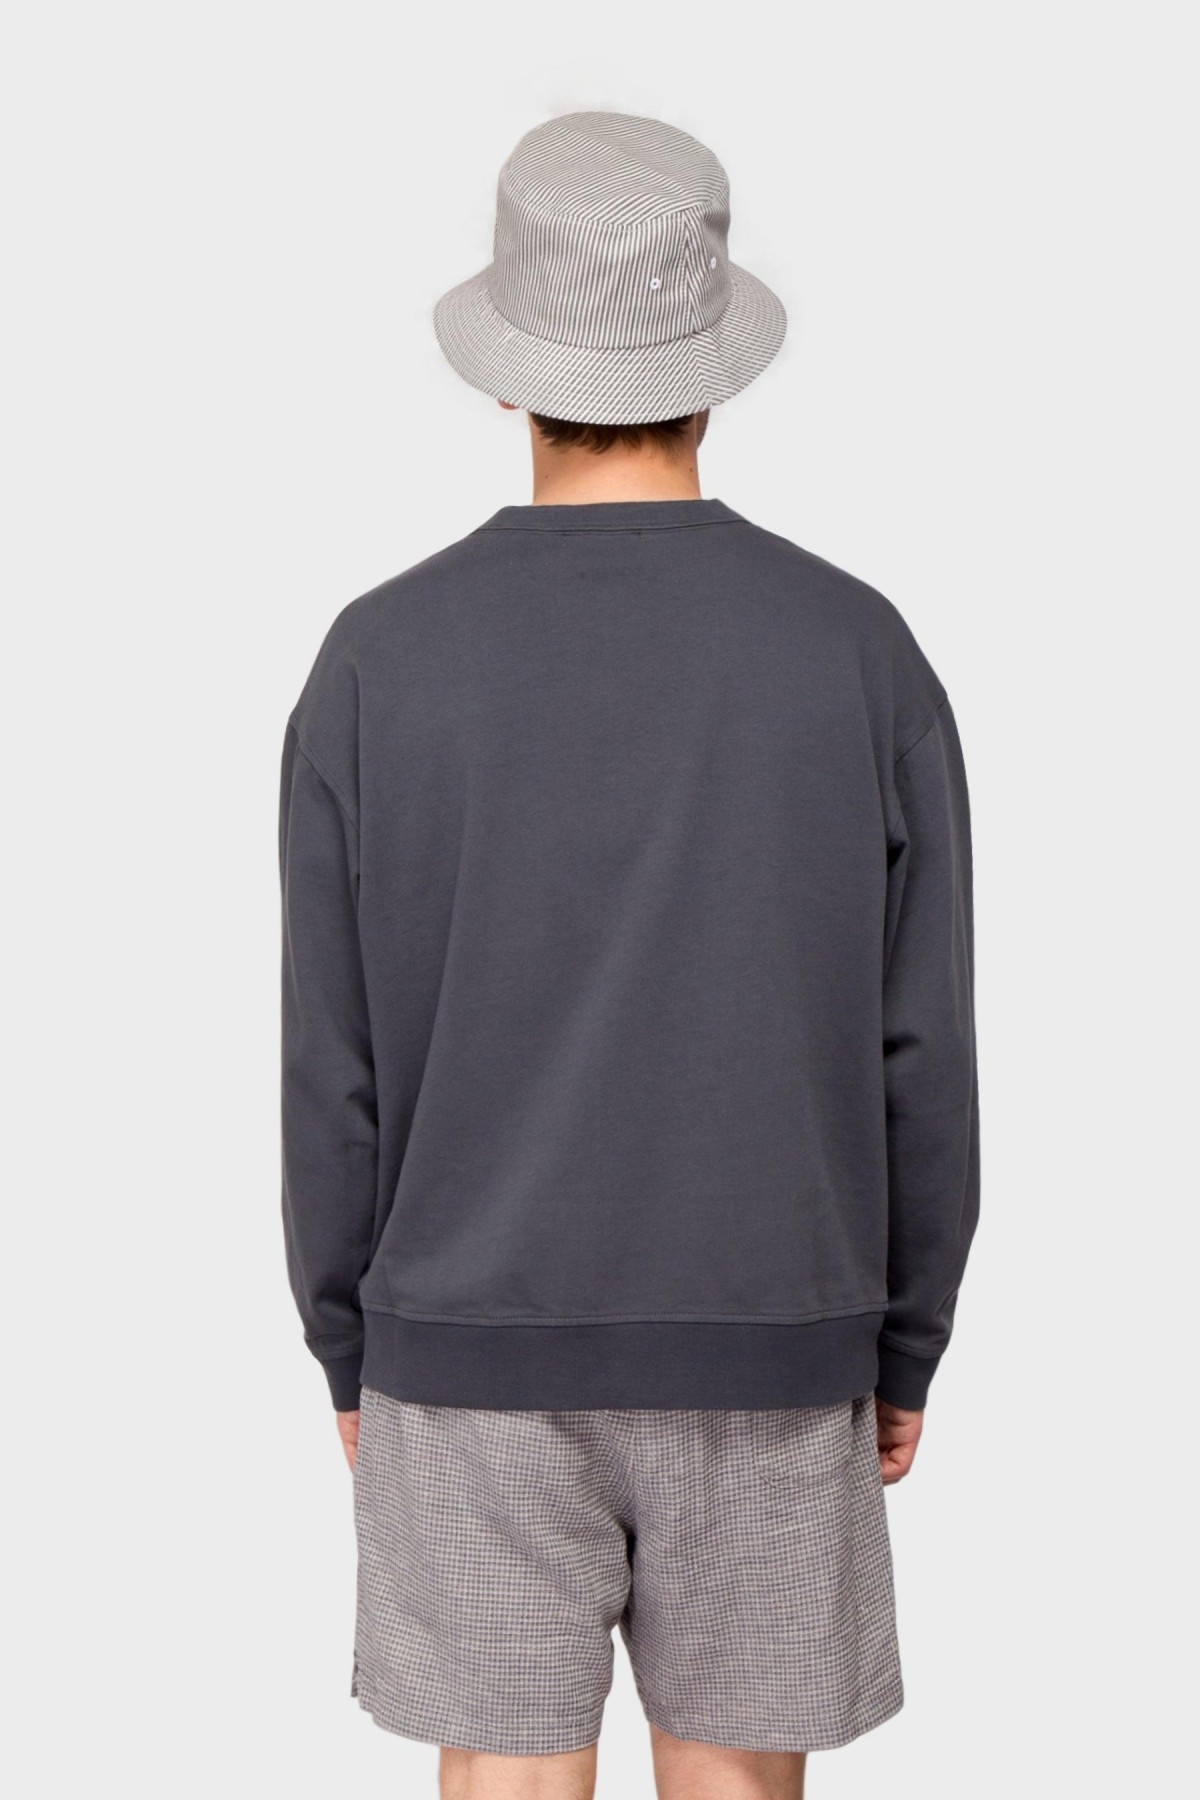 YMC You Must Create Triple LS Top in Charcoal